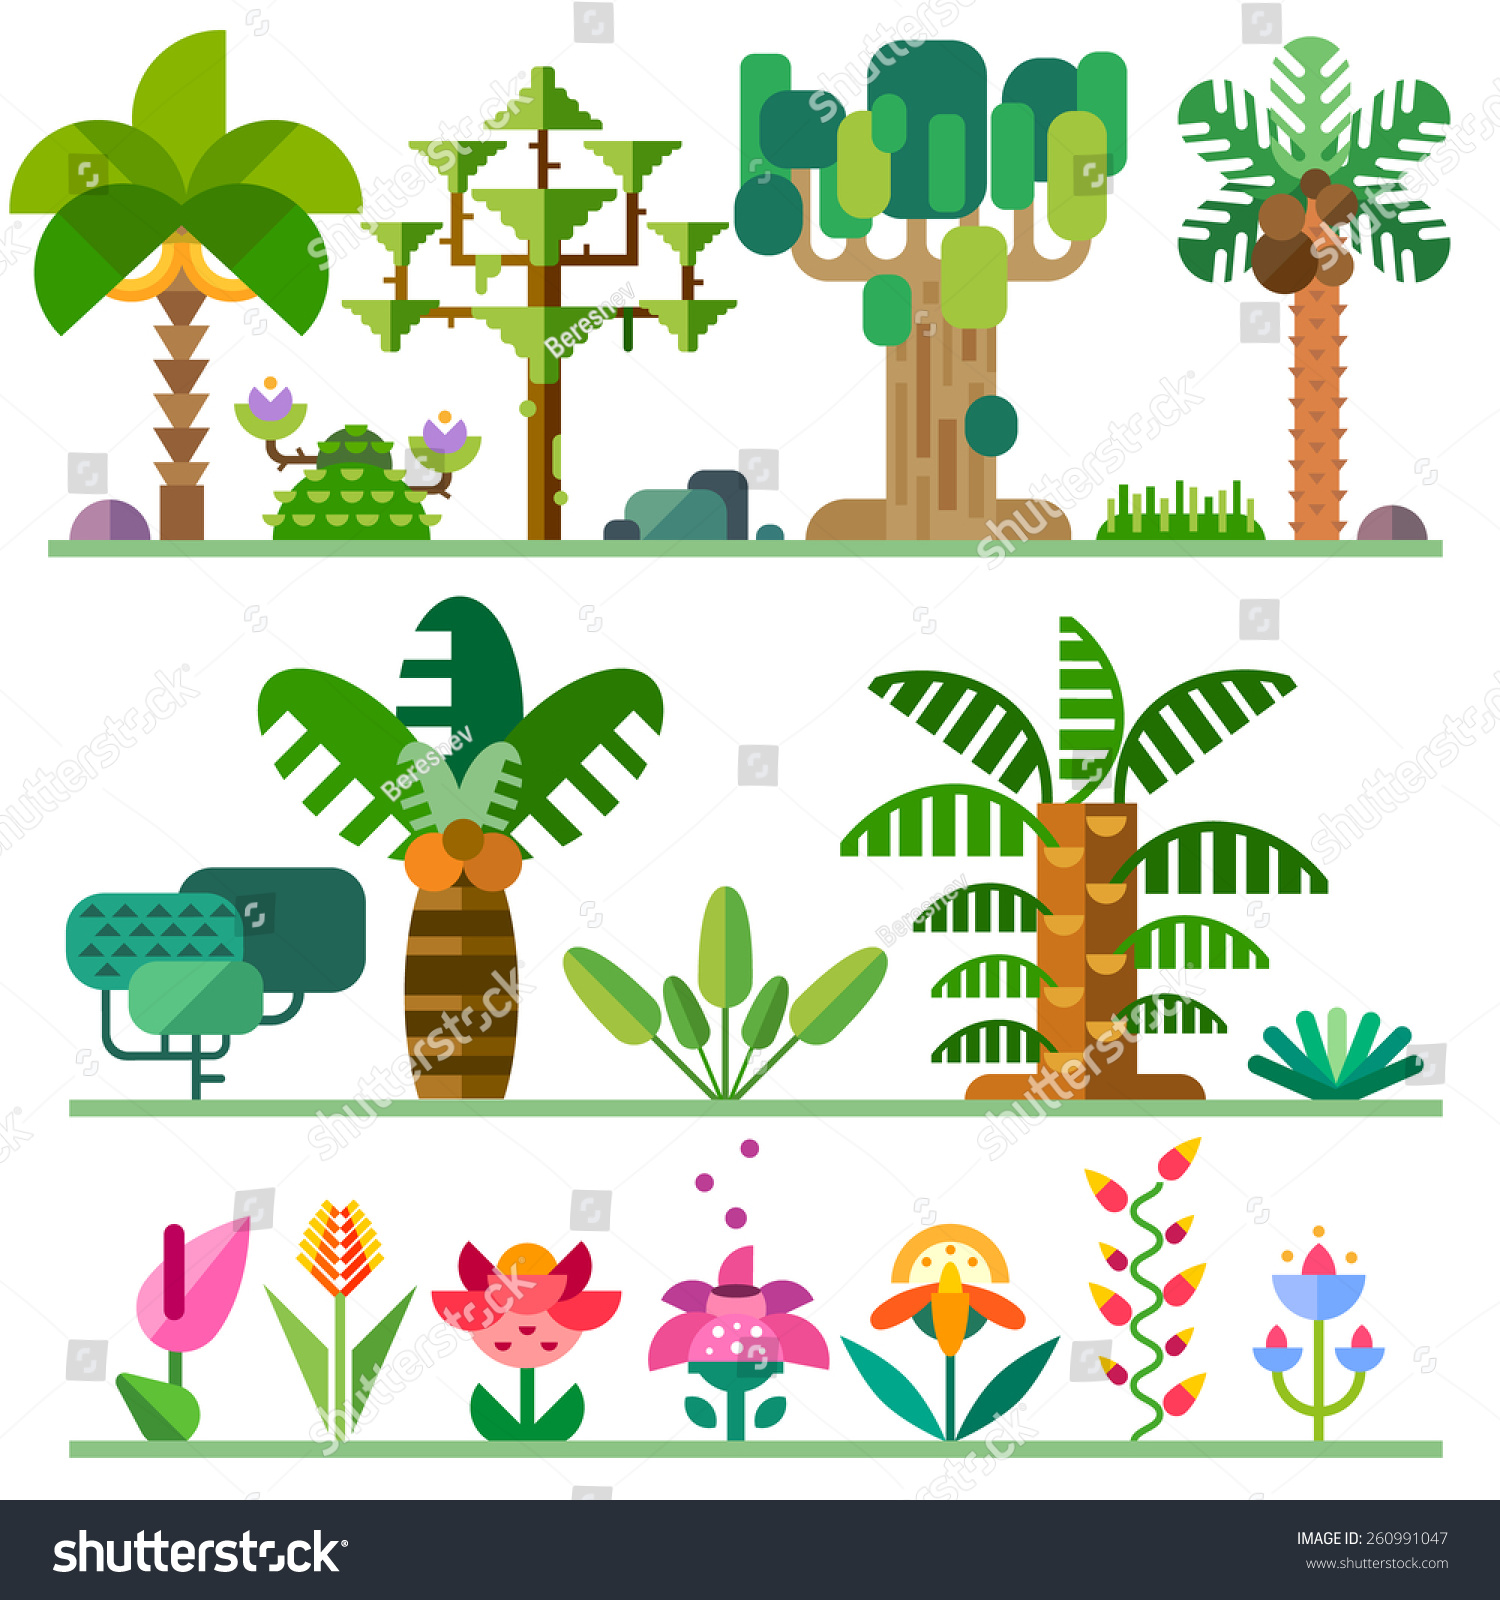 Tropical plants different types trees flowers stock vector for Different types of plants and trees